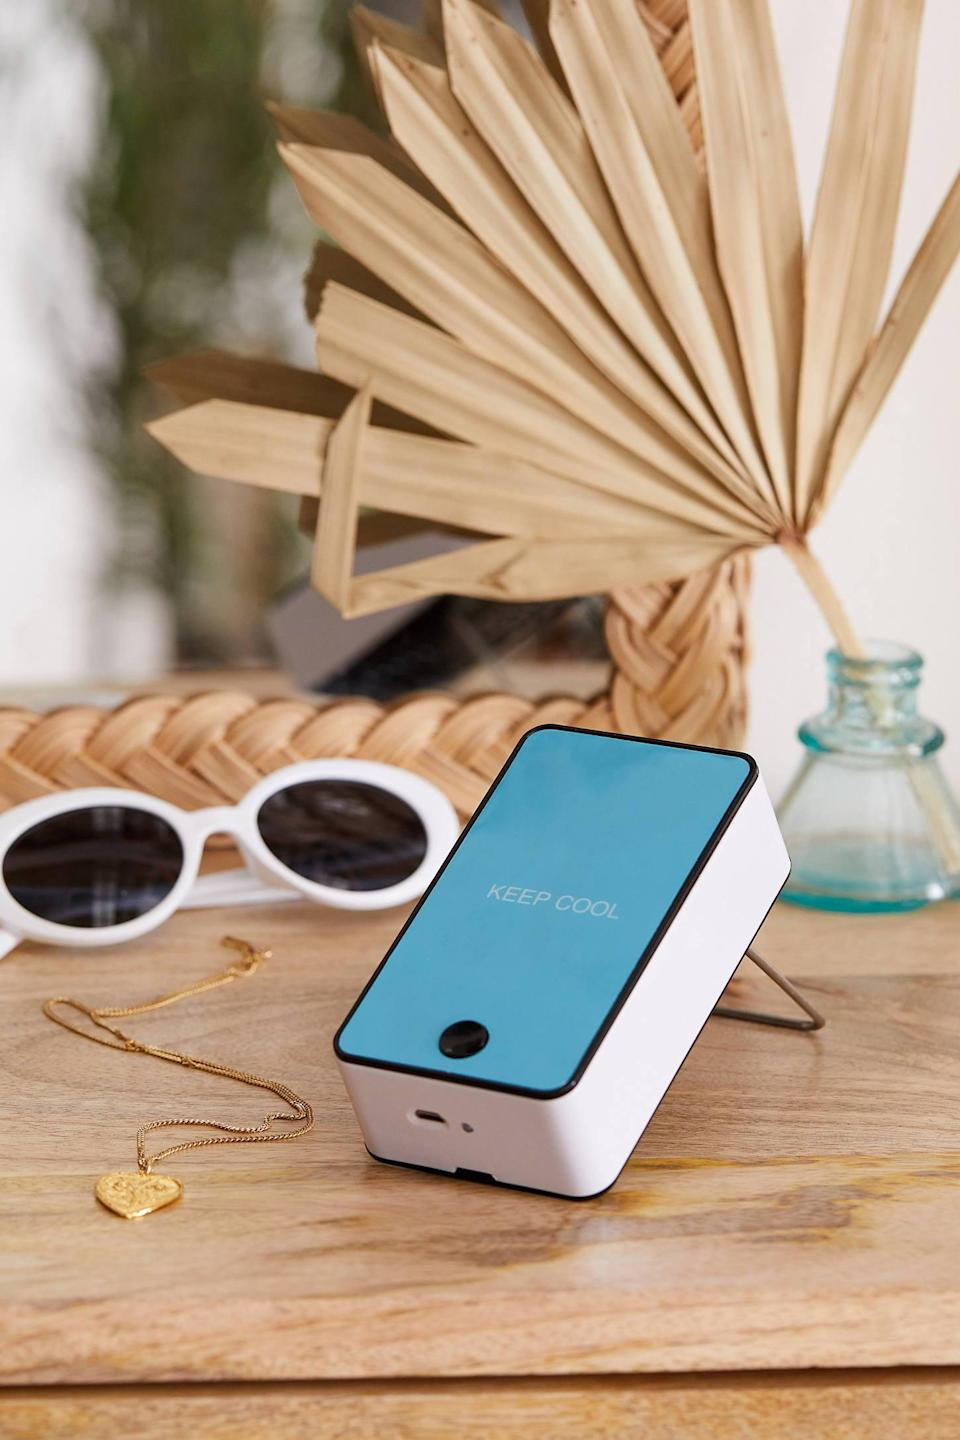 """<p>They can take this <a href=""""https://www.popsugar.com/buy/Portable-Air-Cooler-496552?p_name=Portable%20Air%20Cooler&retailer=urbanoutfitters.com&pid=496552&price=18&evar1=geek%3Aus&evar9=26294675&evar98=https%3A%2F%2Fwww.popsugar.com%2Fnews%2Fphoto-gallery%2F26294675%2Fimage%2F46728734%2FPortable-Air-Cooler&list1=shopping%2Cgadgets%2Choliday%2Cgift%20guide%2Choliday%20living%2Ctech%20gifts%2Cgifts%20under%20%24100&prop13=api&pdata=1"""" class=""""link rapid-noclick-resp"""" rel=""""nofollow noopener"""" target=""""_blank"""" data-ylk=""""slk:Portable Air Cooler"""">Portable Air Cooler</a> ($18) anywhere.</p>"""